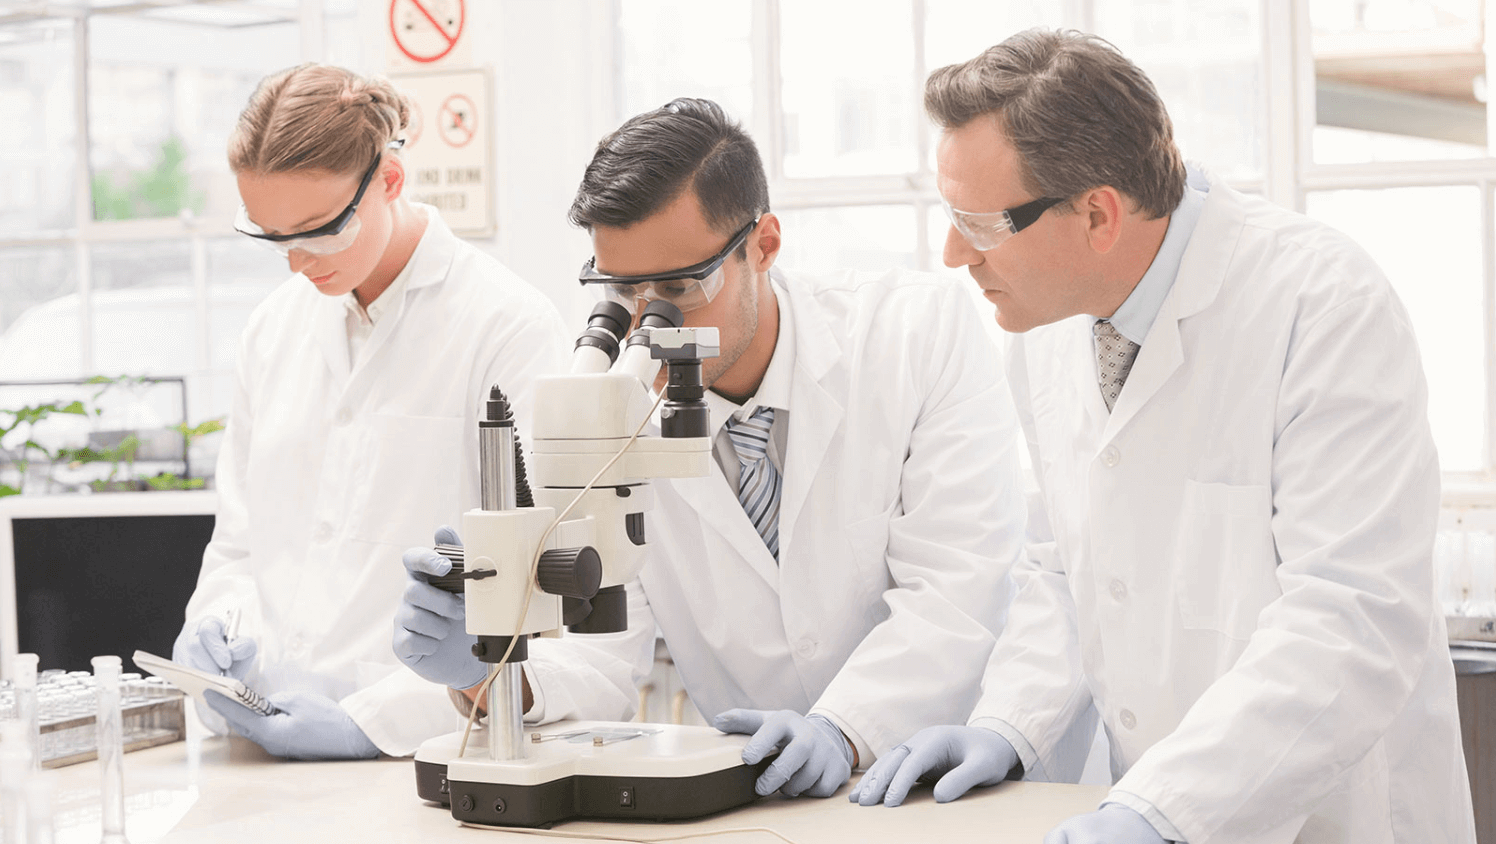 Healthcare proffesionals looking into a microscope